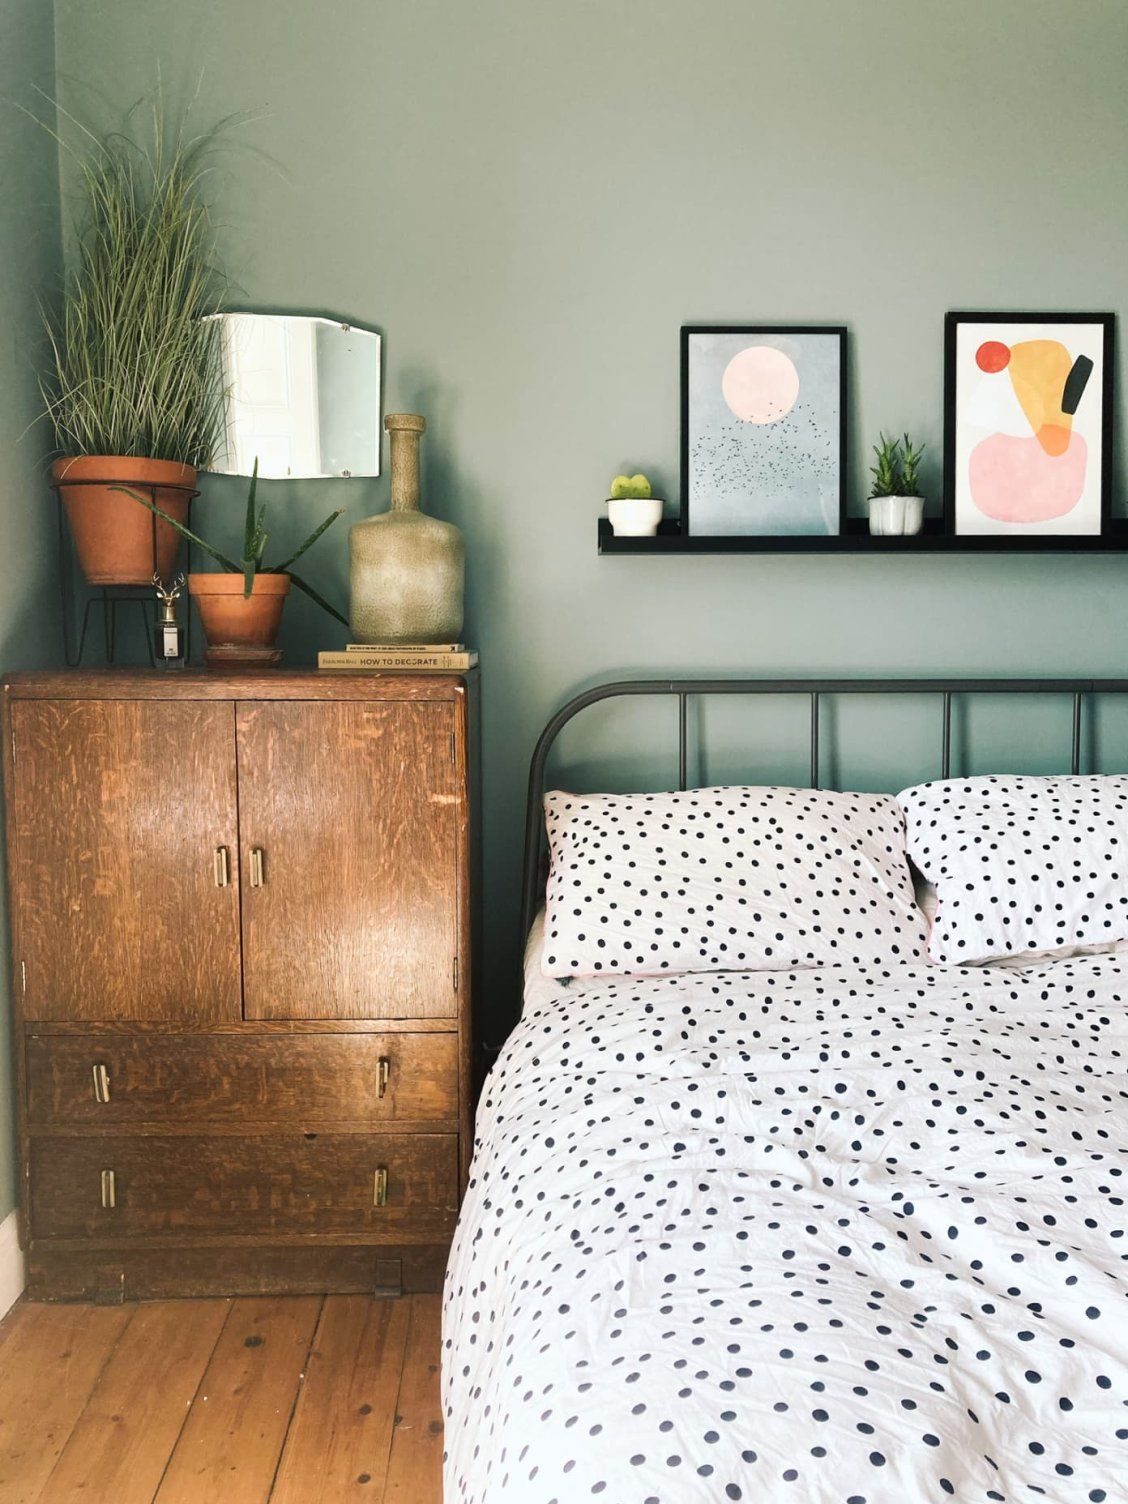 Before & After: A tiny neglected flat got a total kitchen DIY redo and a new earthy color palette. | House Tours by Apartment Therapy #housetours #hometours #bedroomideas #colorfulbedroom #bedroomdecor #greenbedroom #modernbedroom #moderndecor #modern